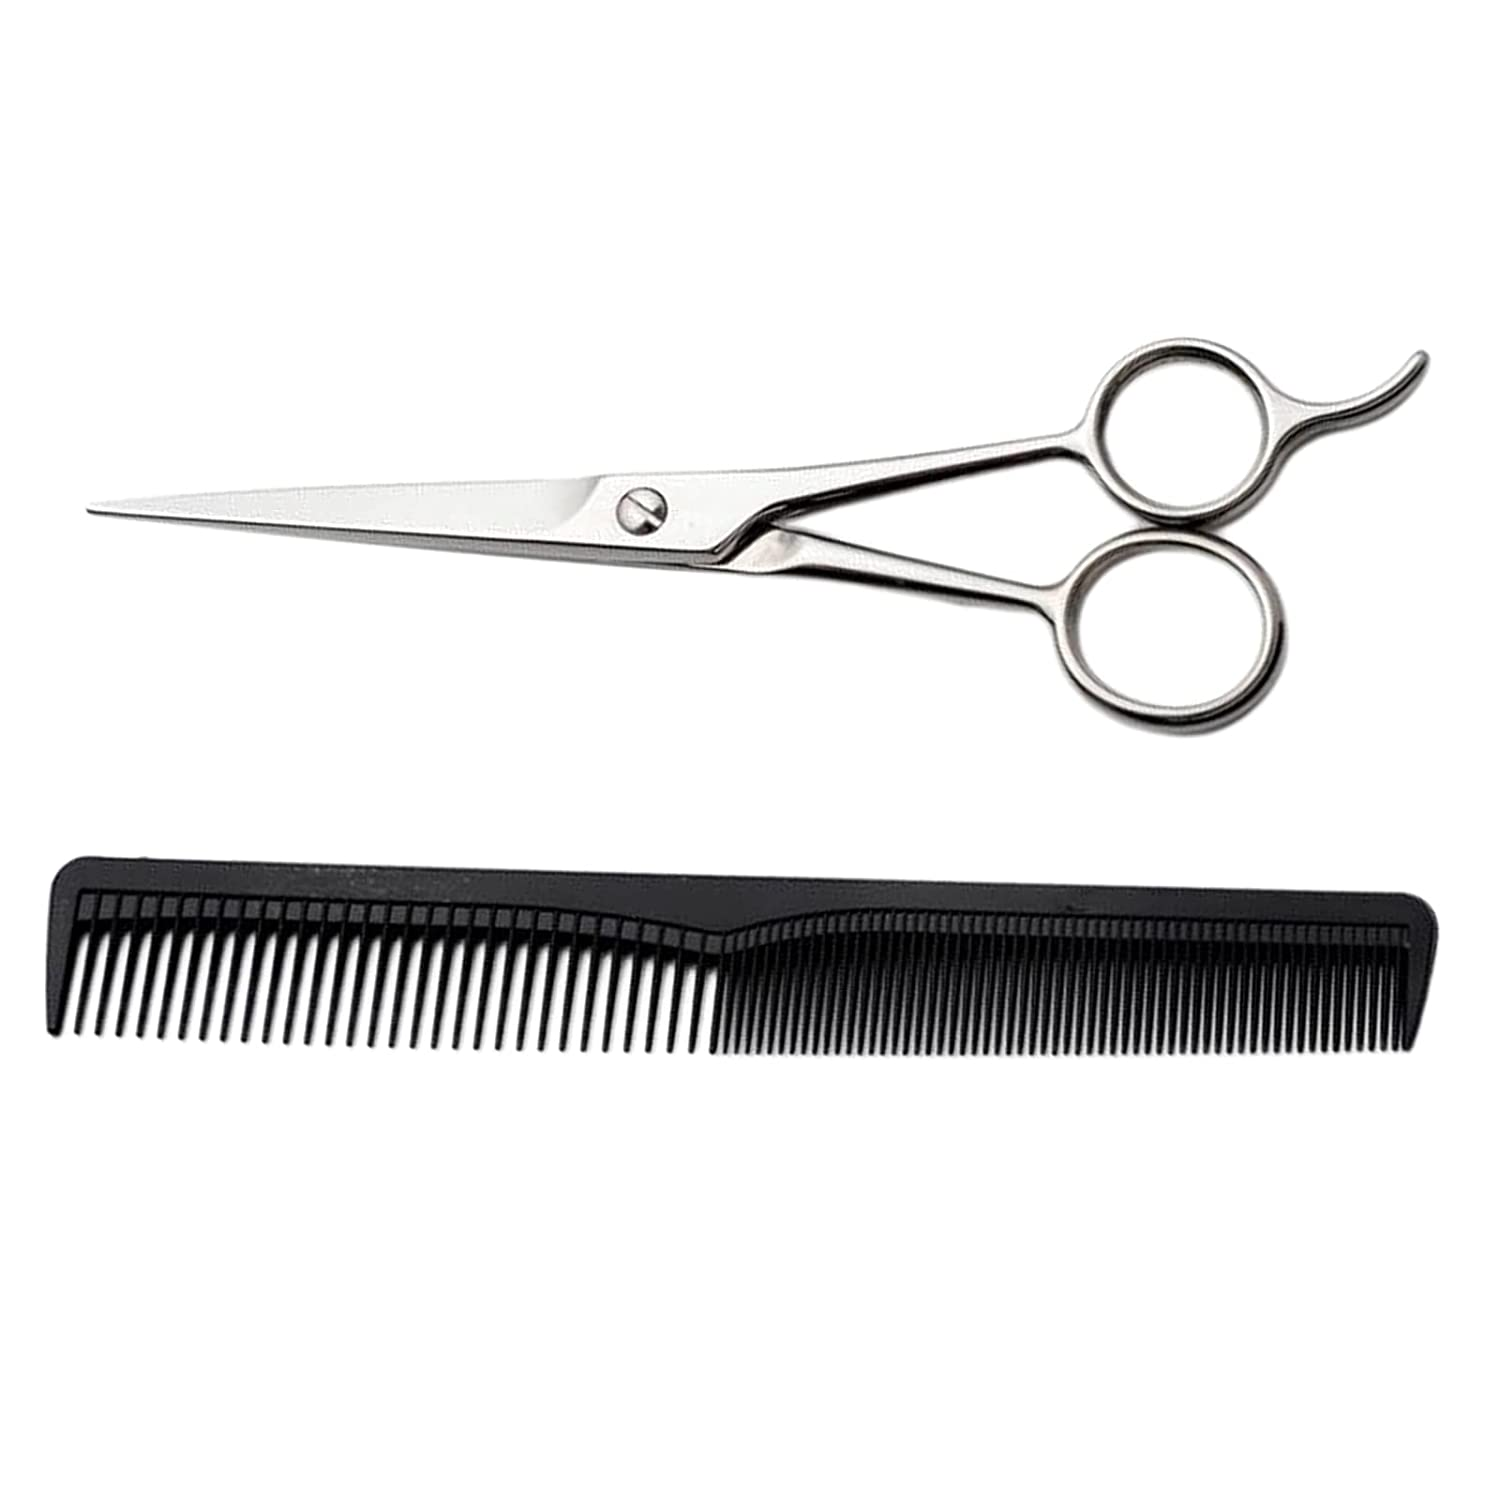 Limited time sale Barber Mail order cheap Haircut Scissors Stainless Steel for Thinning Cu